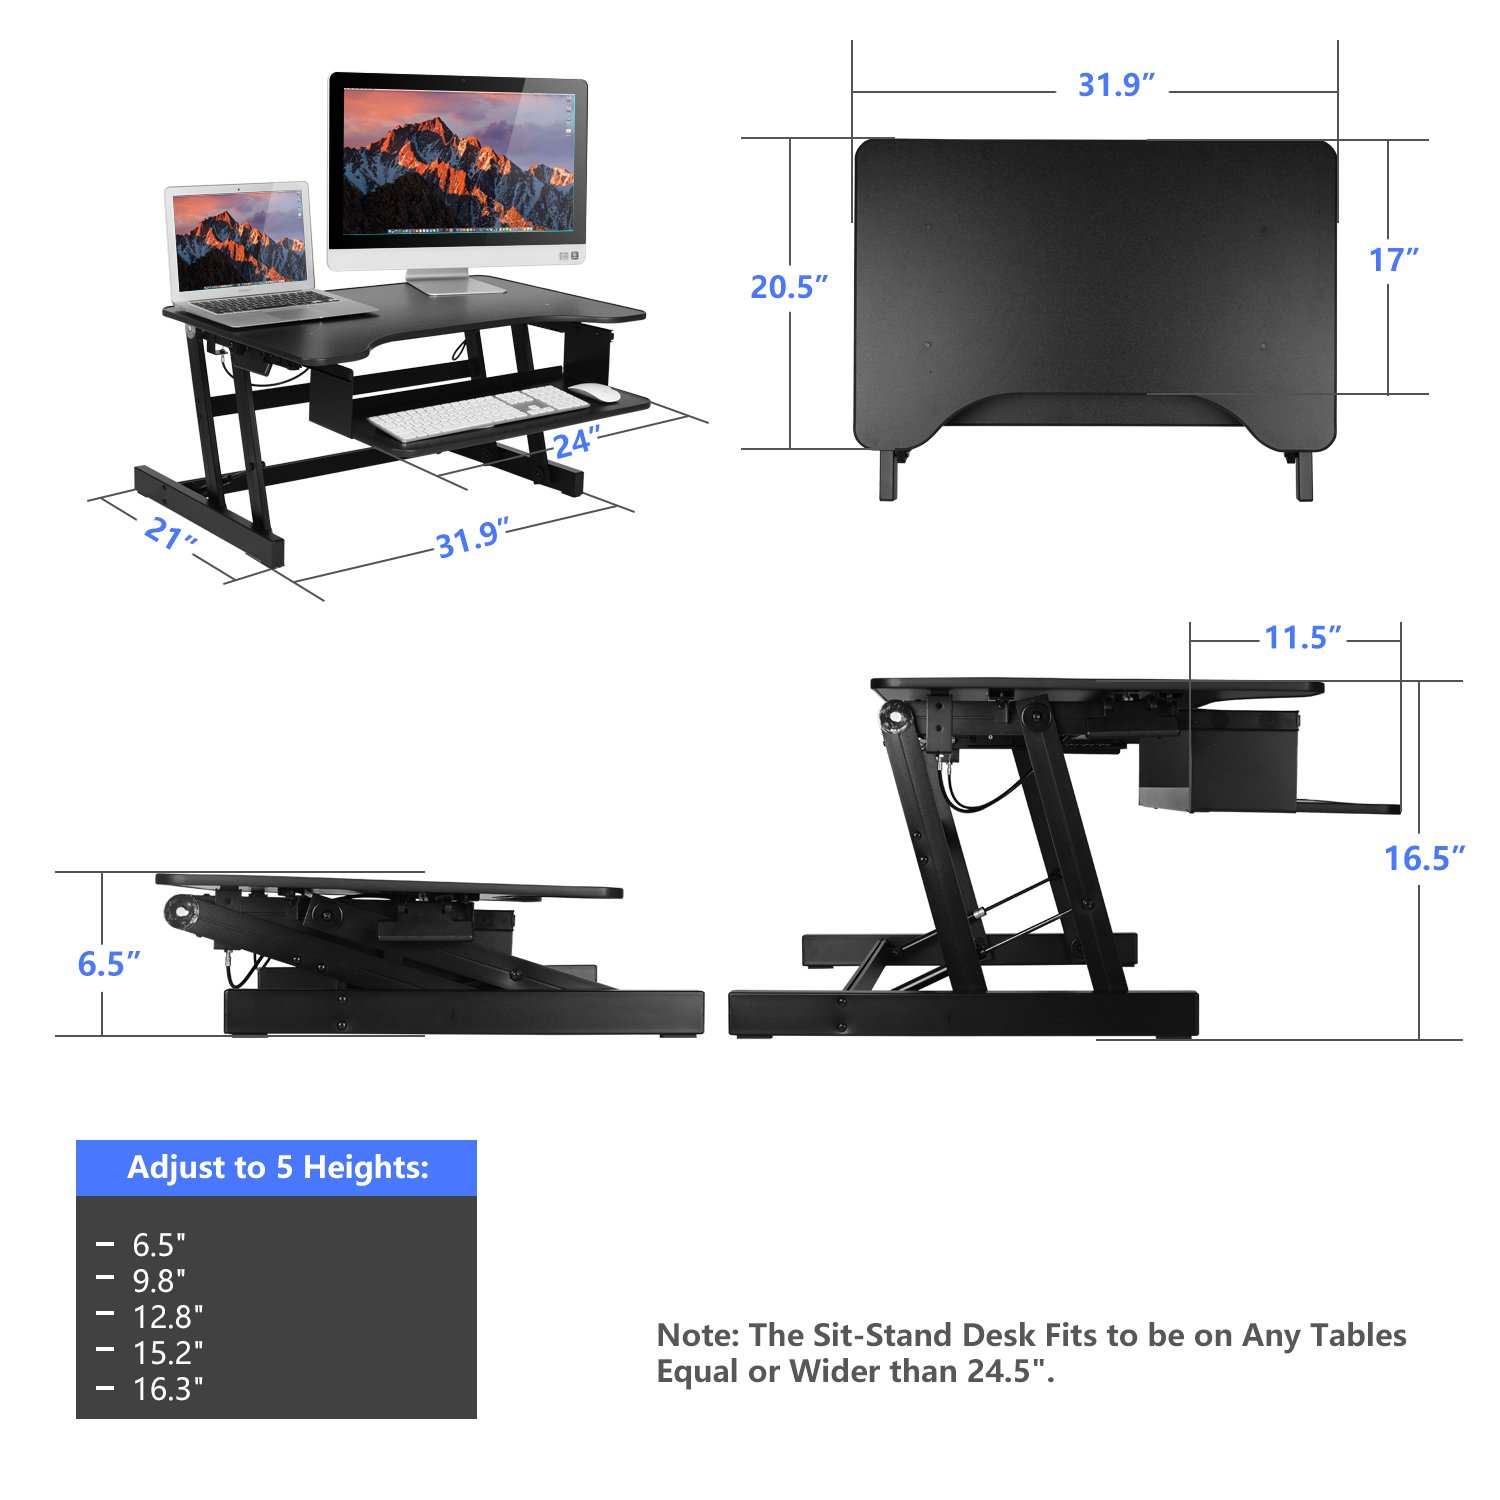 SMONET Desk Riser Height Adjustable Standing Desk Sit Stand Up Converter Laptop Stands Large Wide Desk Riser, 32 Tabletop Workstation Foldable fits Dual Monitor with Retractable Keyboard Tray – Black